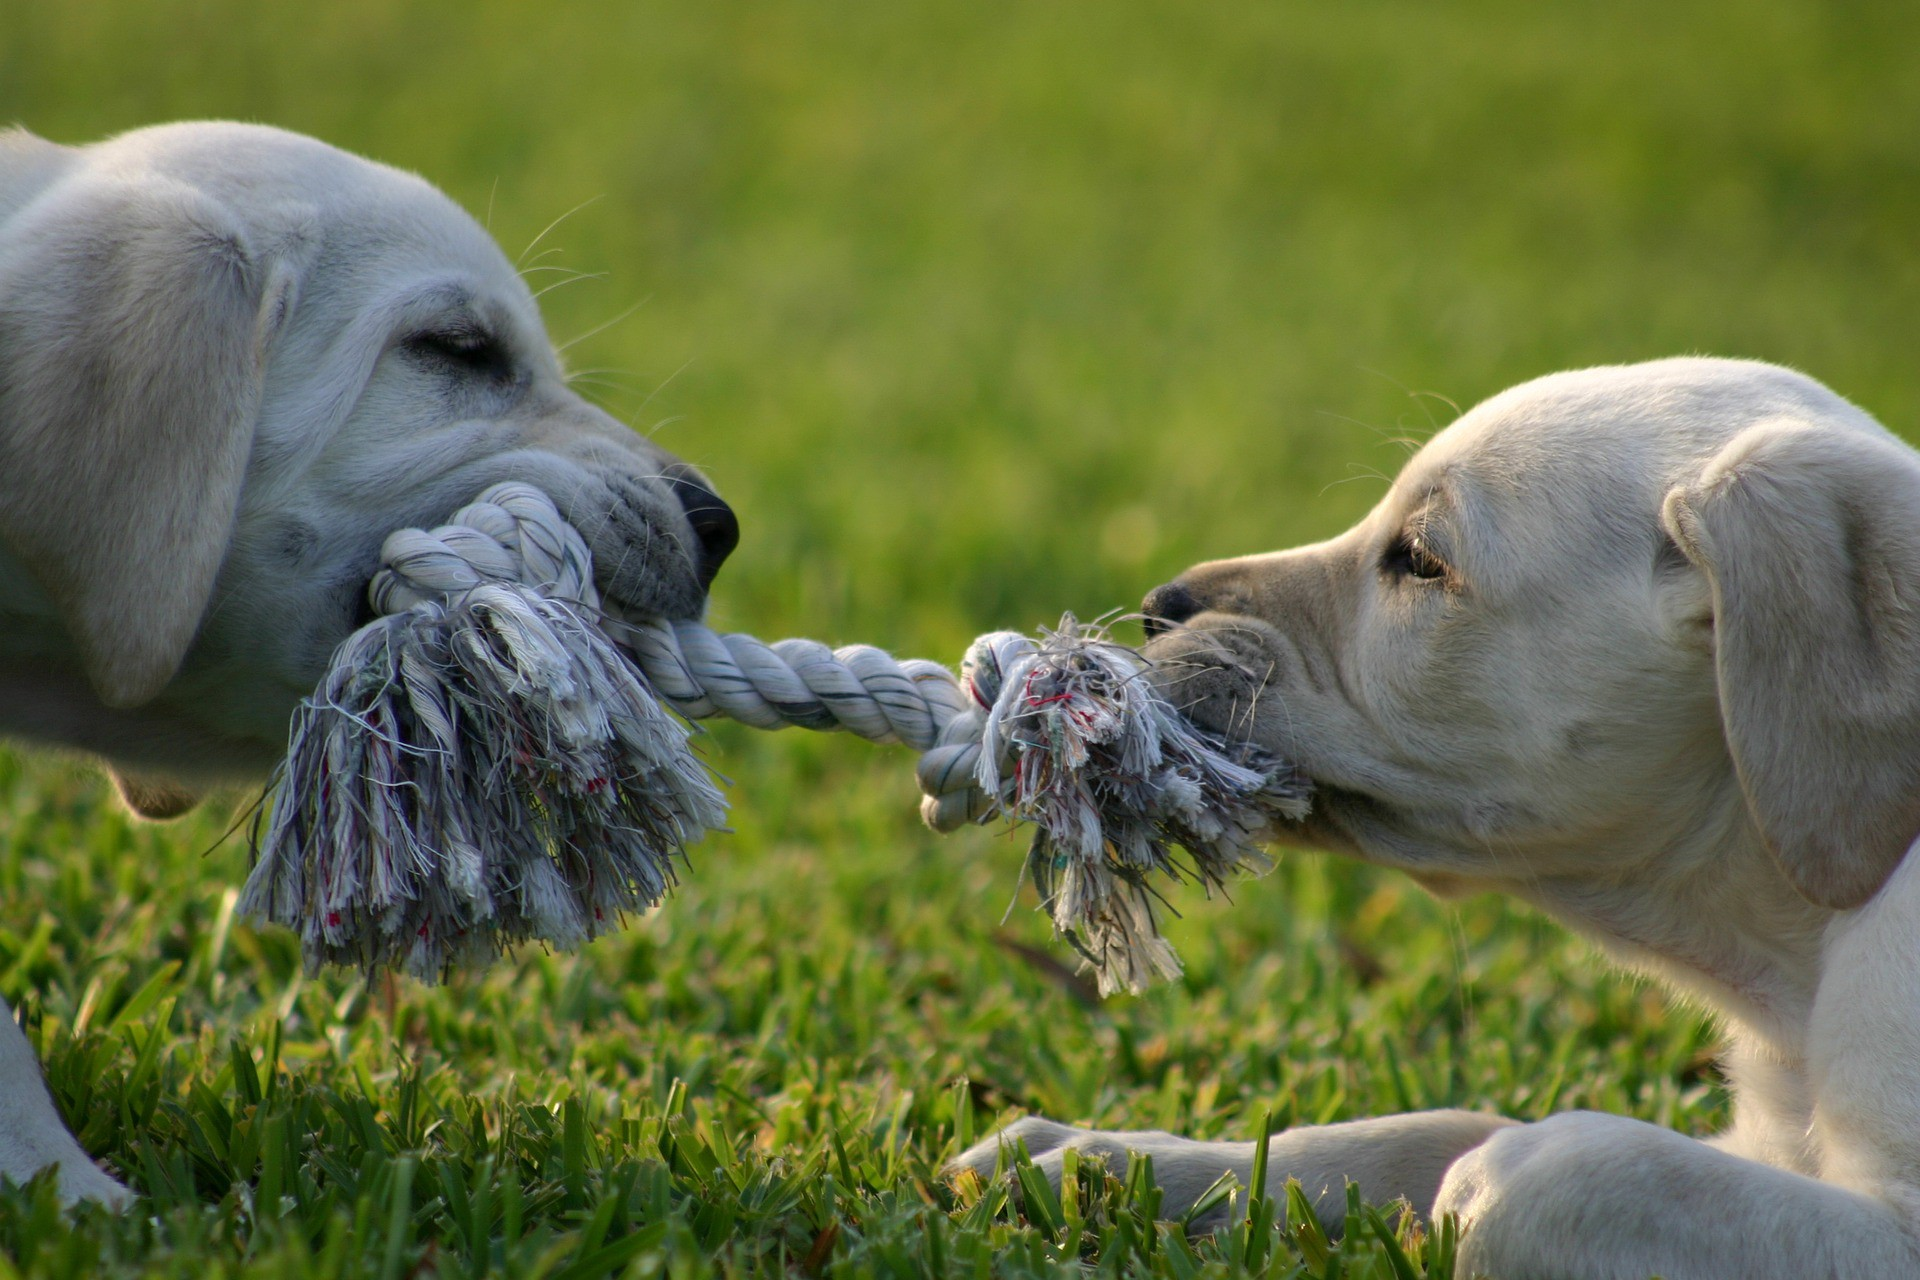 Two puppies on either end of rope in a serious tug of war